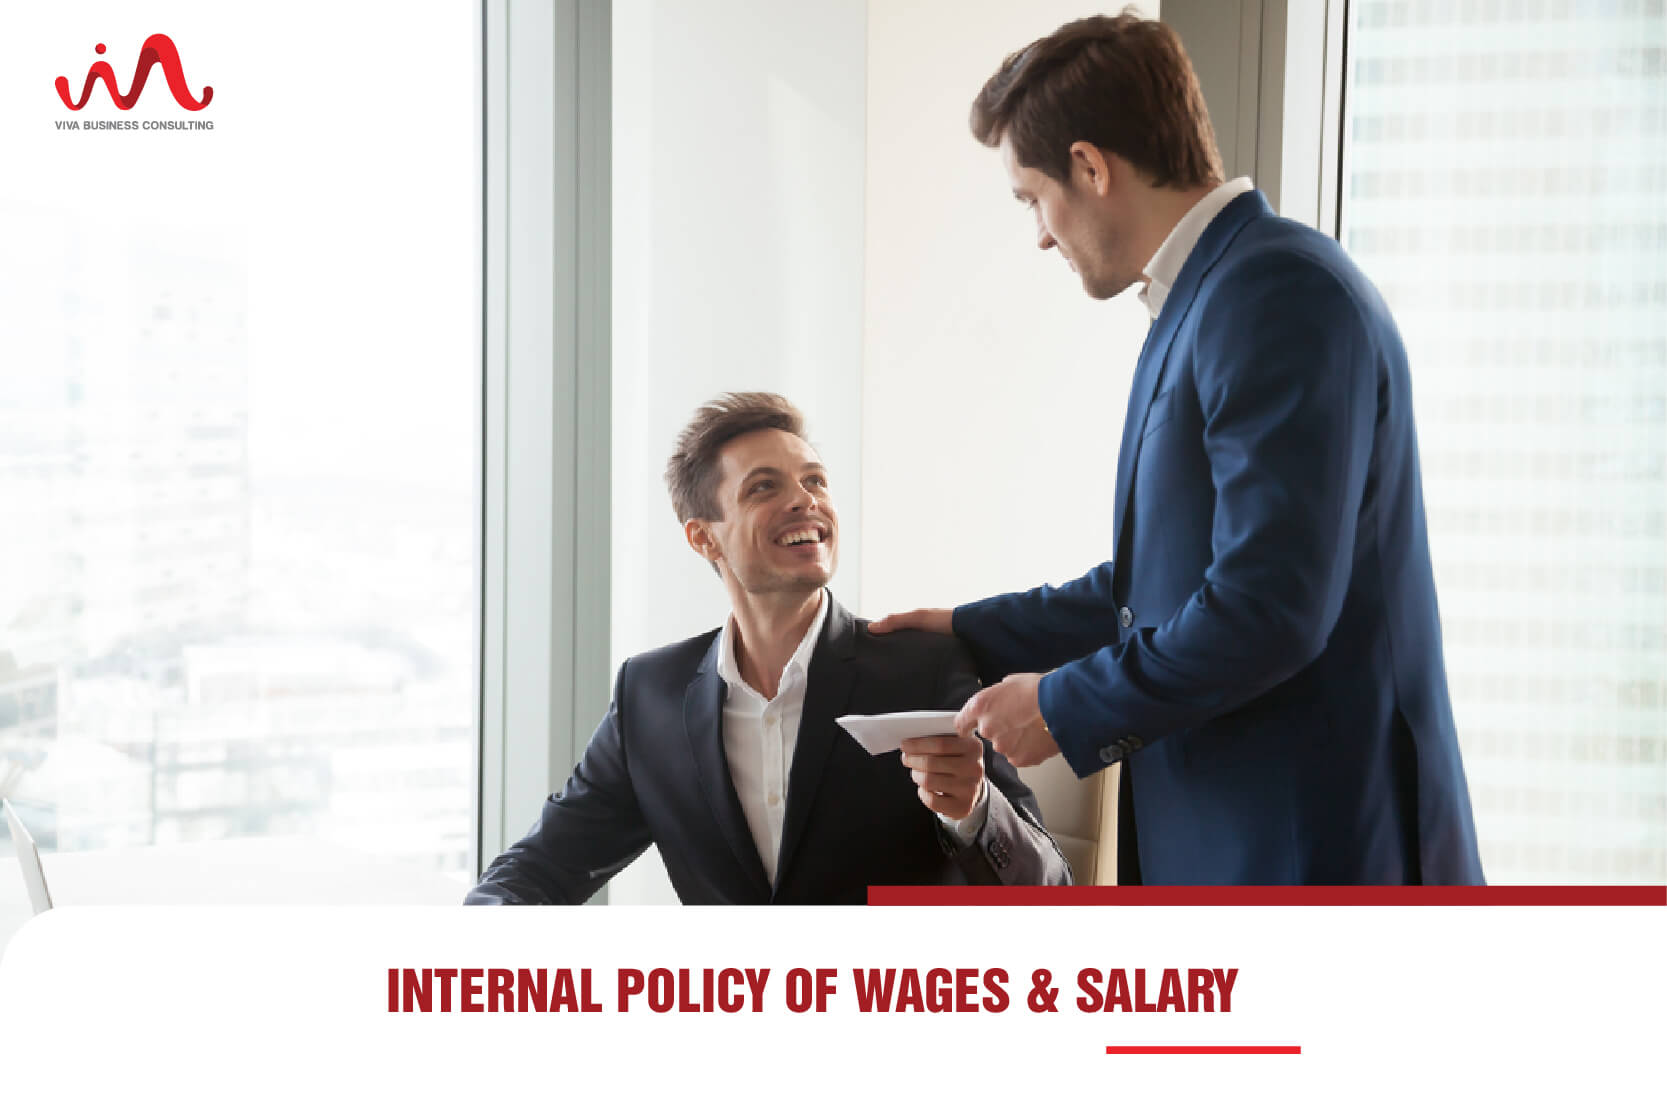 Internal salary and wages policy